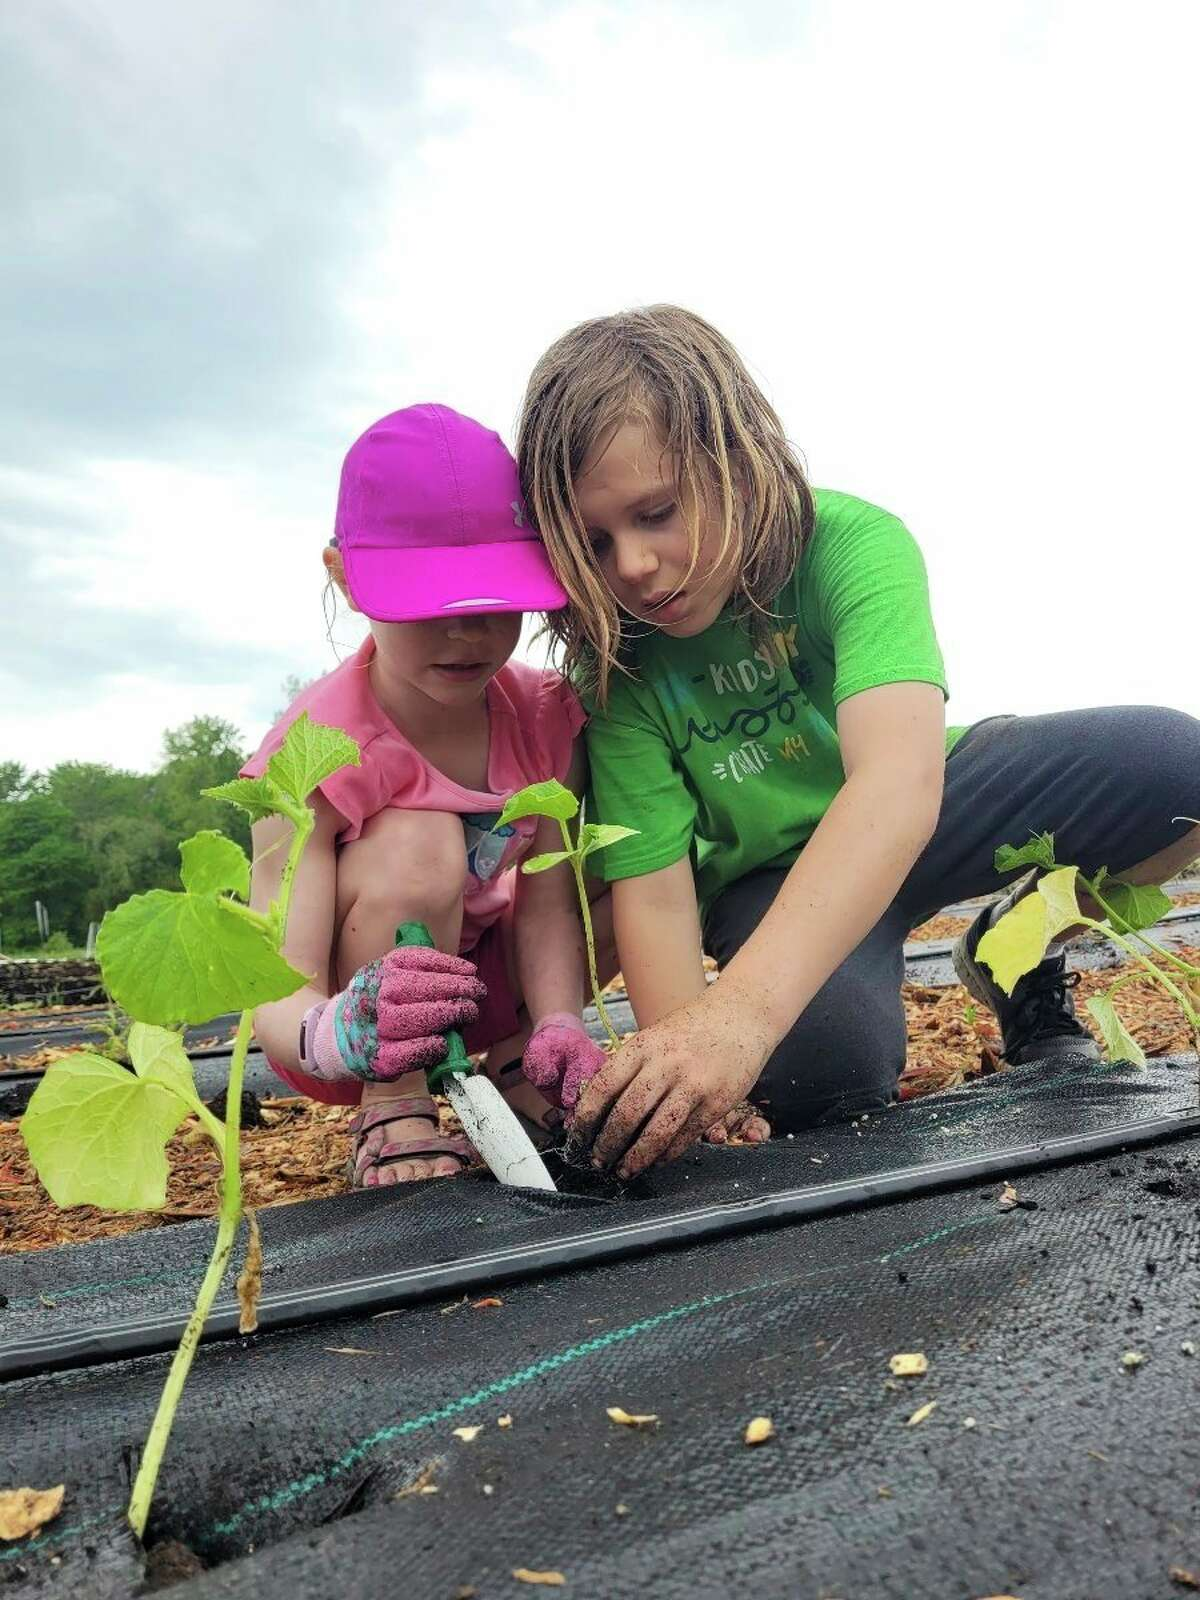 Phoenix Community Farm received a $10,000 grant from the Charles J. Strosacker Foundation for infrastructure and equipment expansion. (Photo provided)